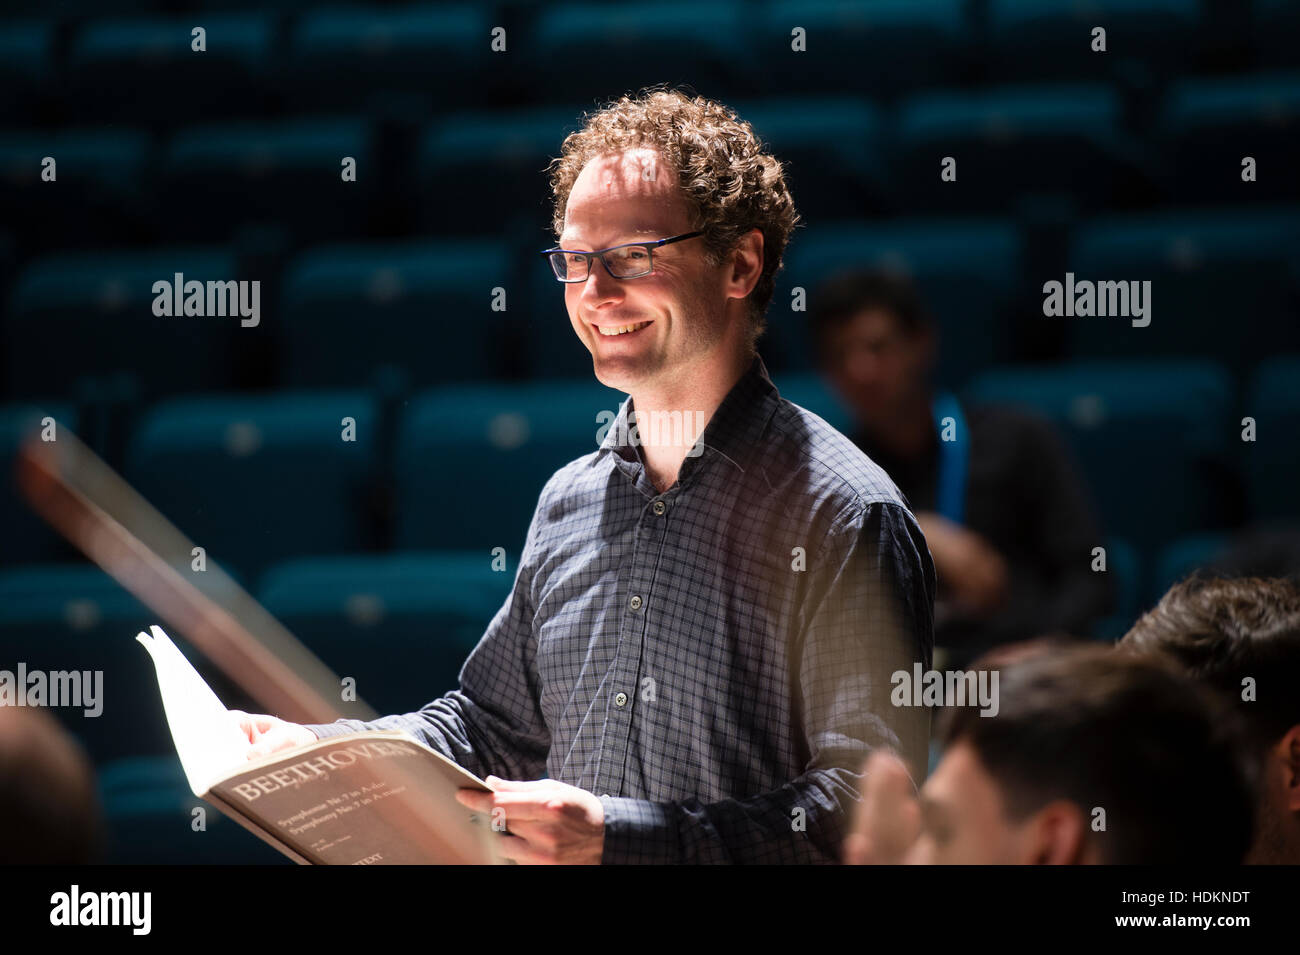 Toby Purser, conductor, and artistic director of the Orion Orchestra, at MusicFest Aberystwyth - Stock Image